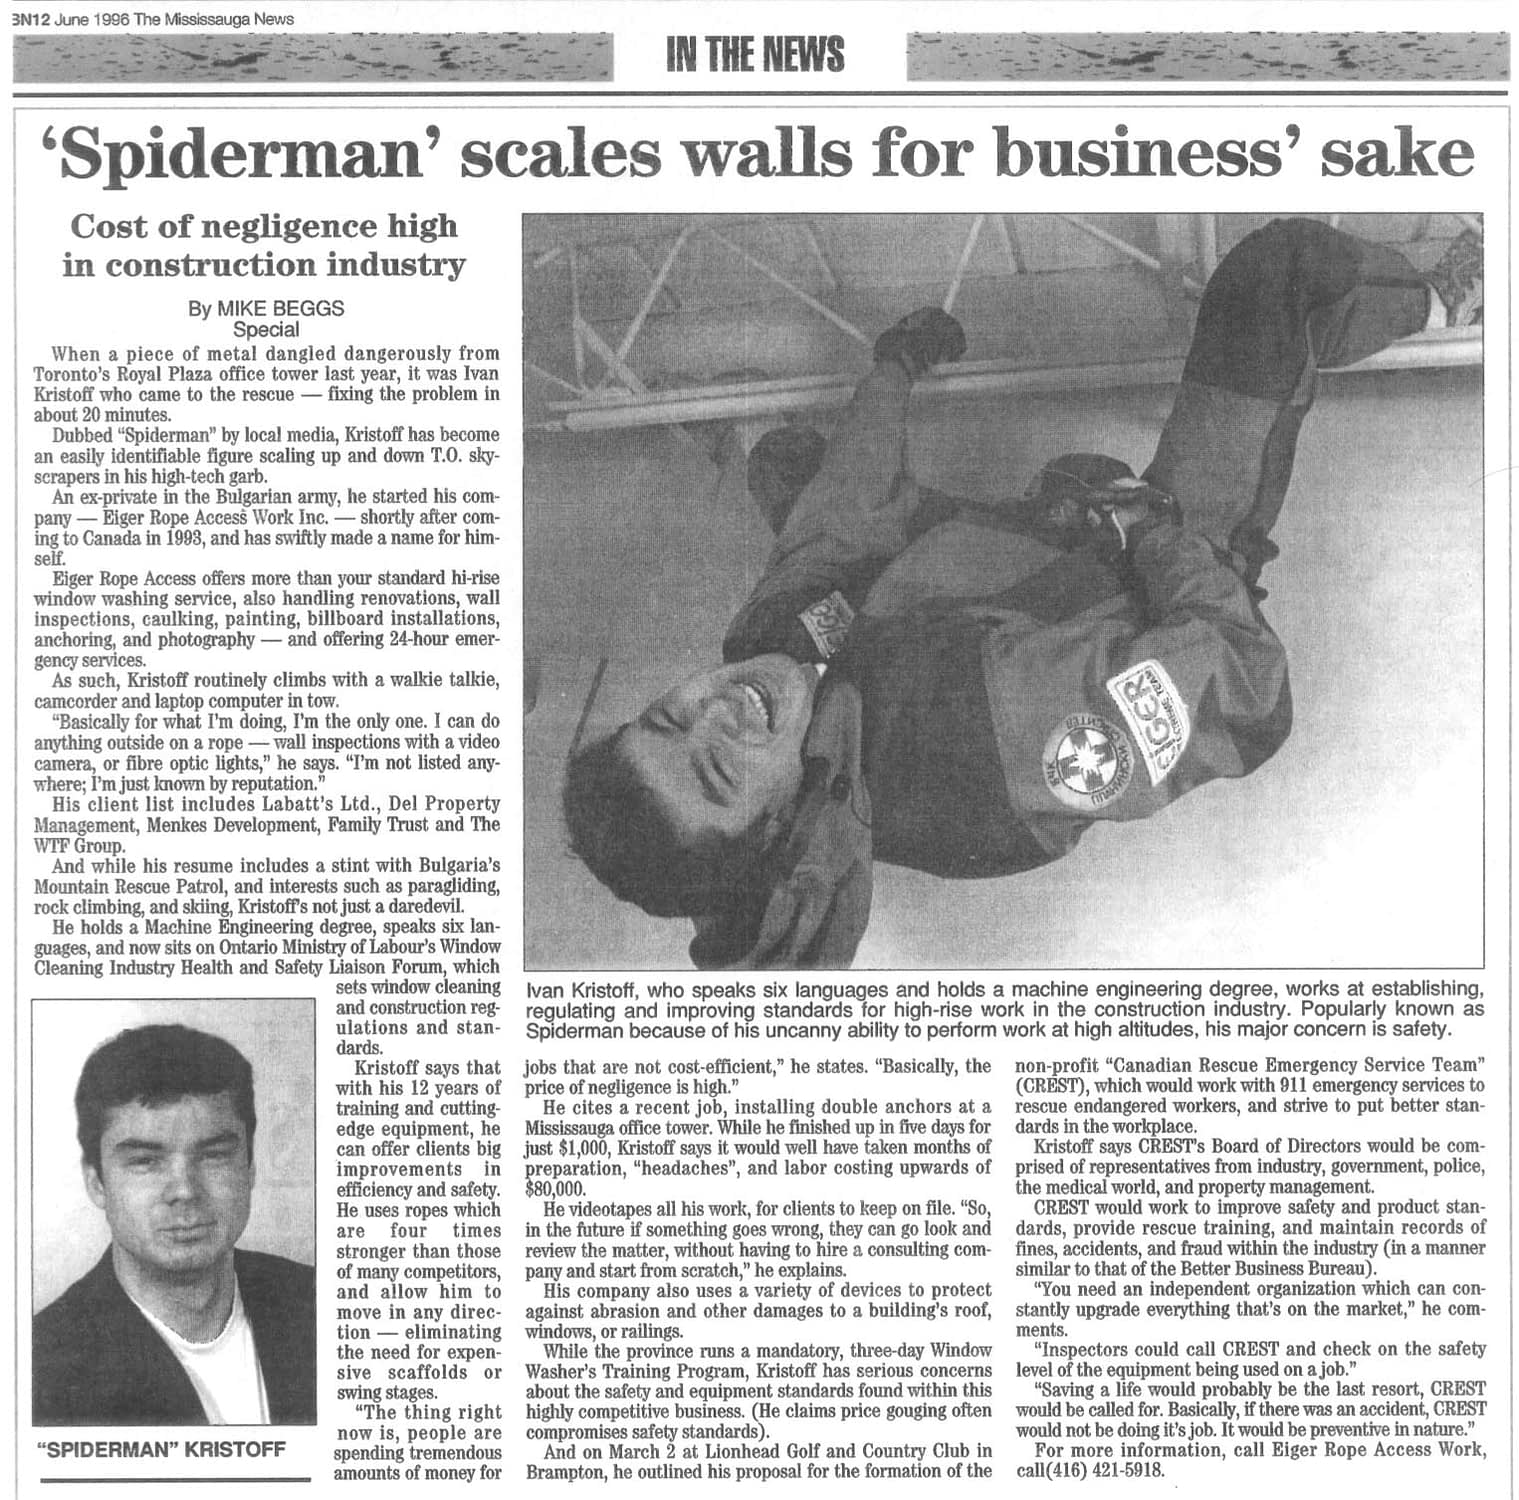 'Spiderman' scales walls for business' sake